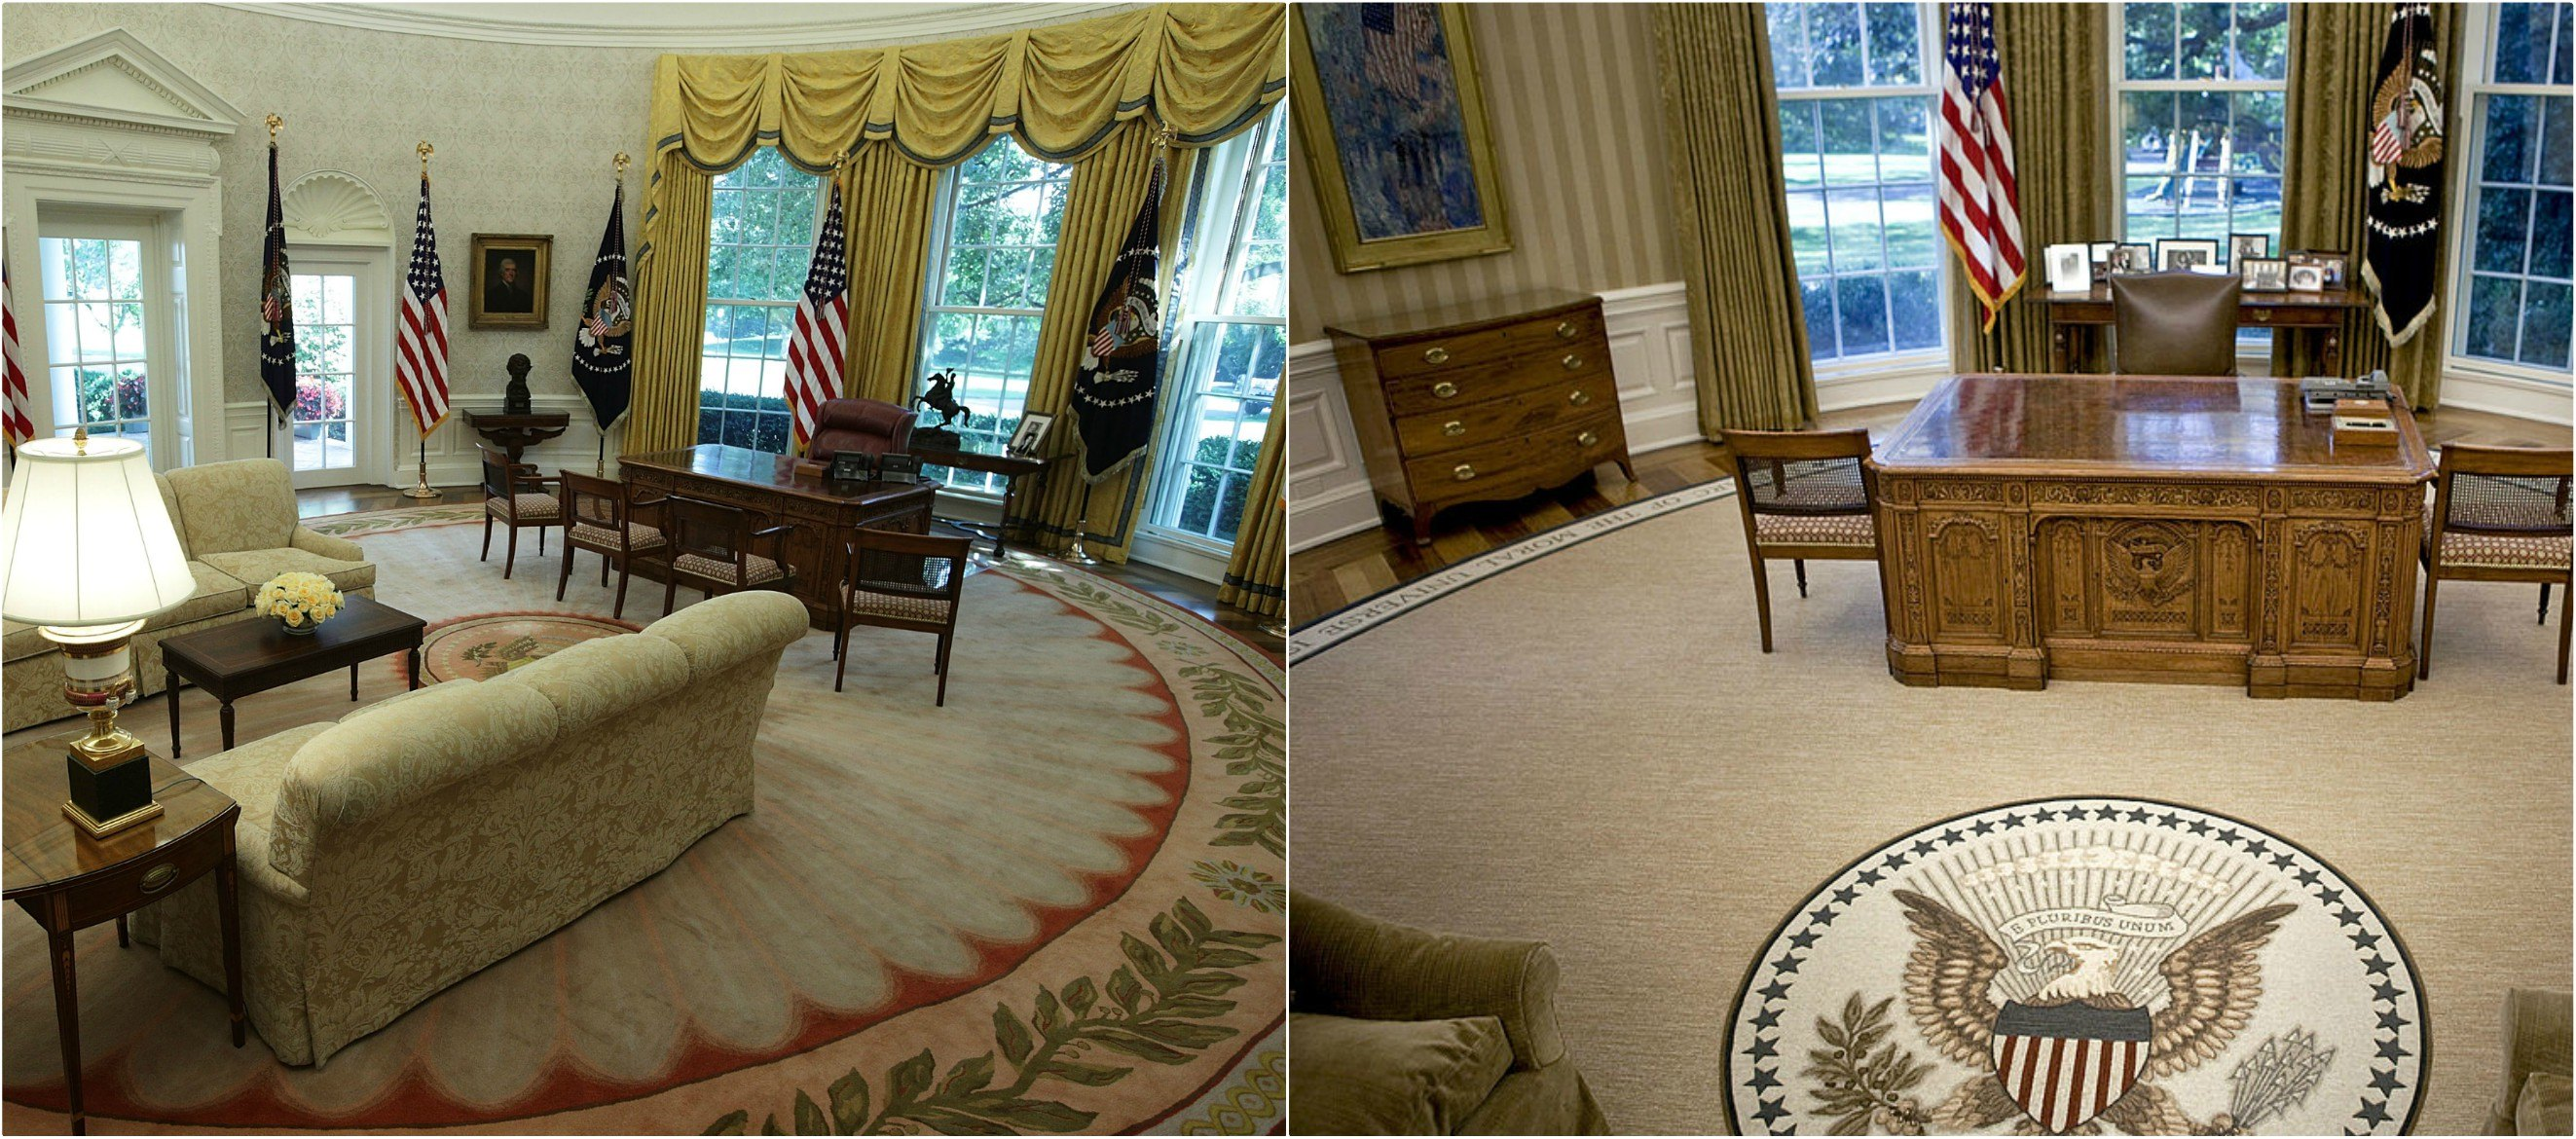 Donald Trump In Oval Office This Is The First Thing Donald Trump Changed In The Oval